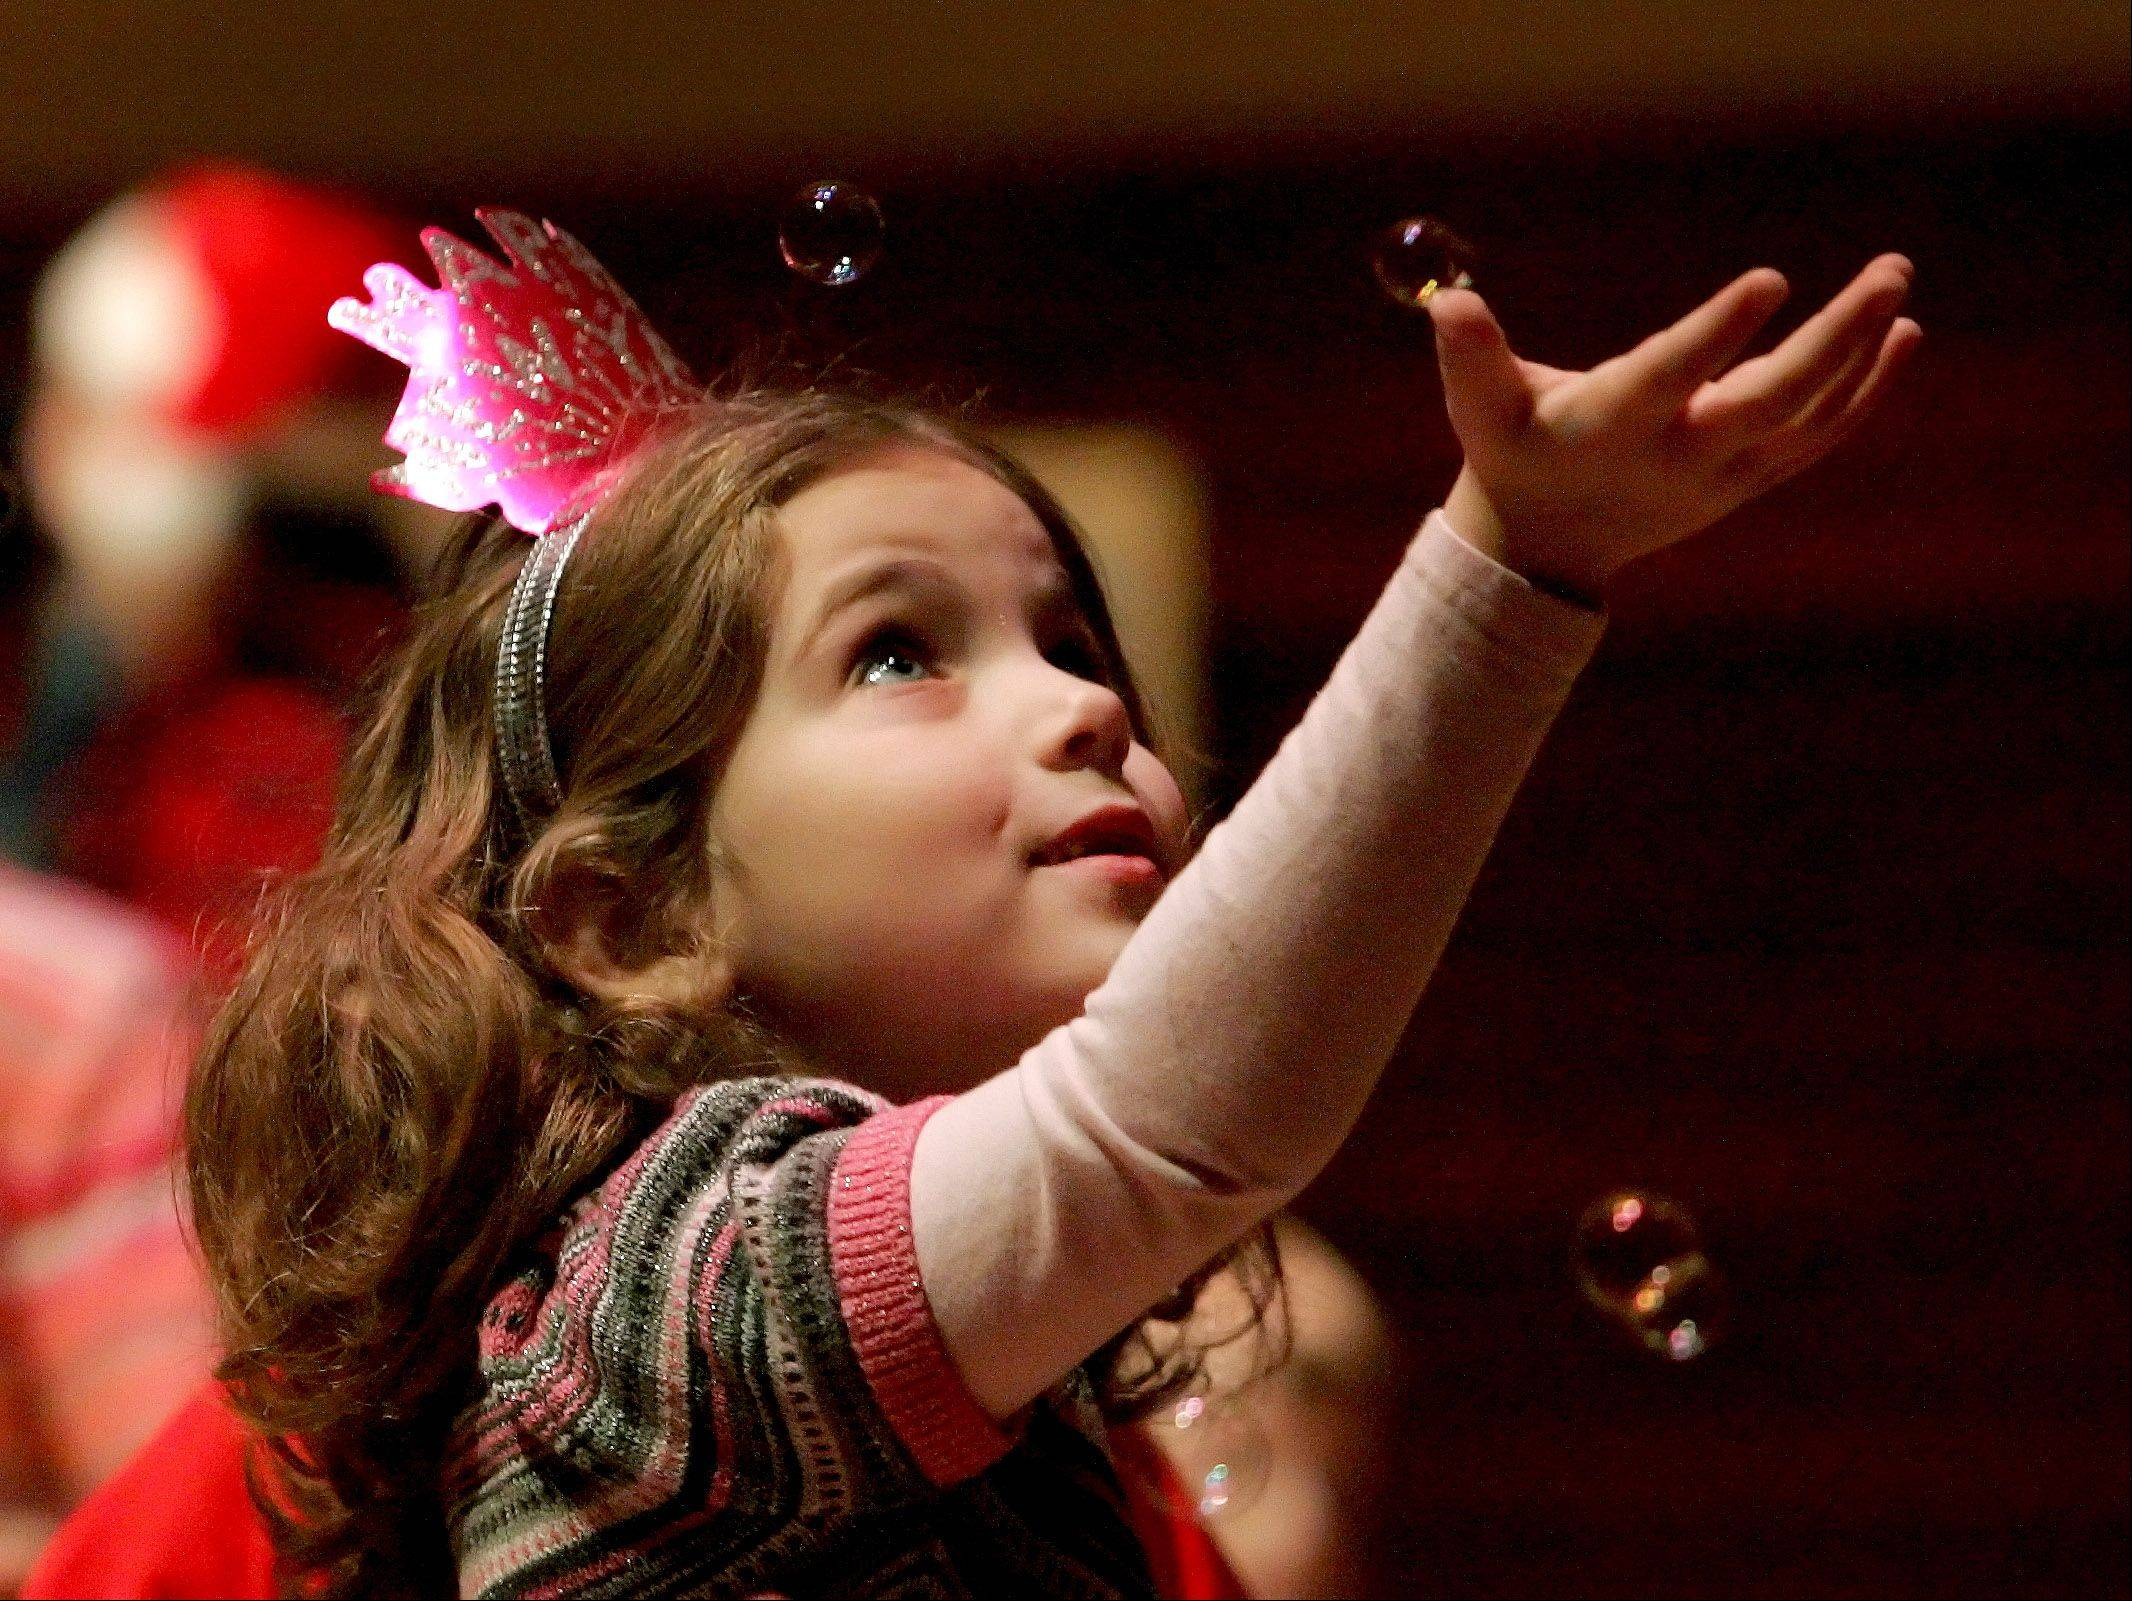 Katie Harley, 5, of Naperville, tries to catch a bubble as she celebrates at the DuPage Children's Museum's Bubble Bash Monday at Wentz Concert Hall in Naperville.